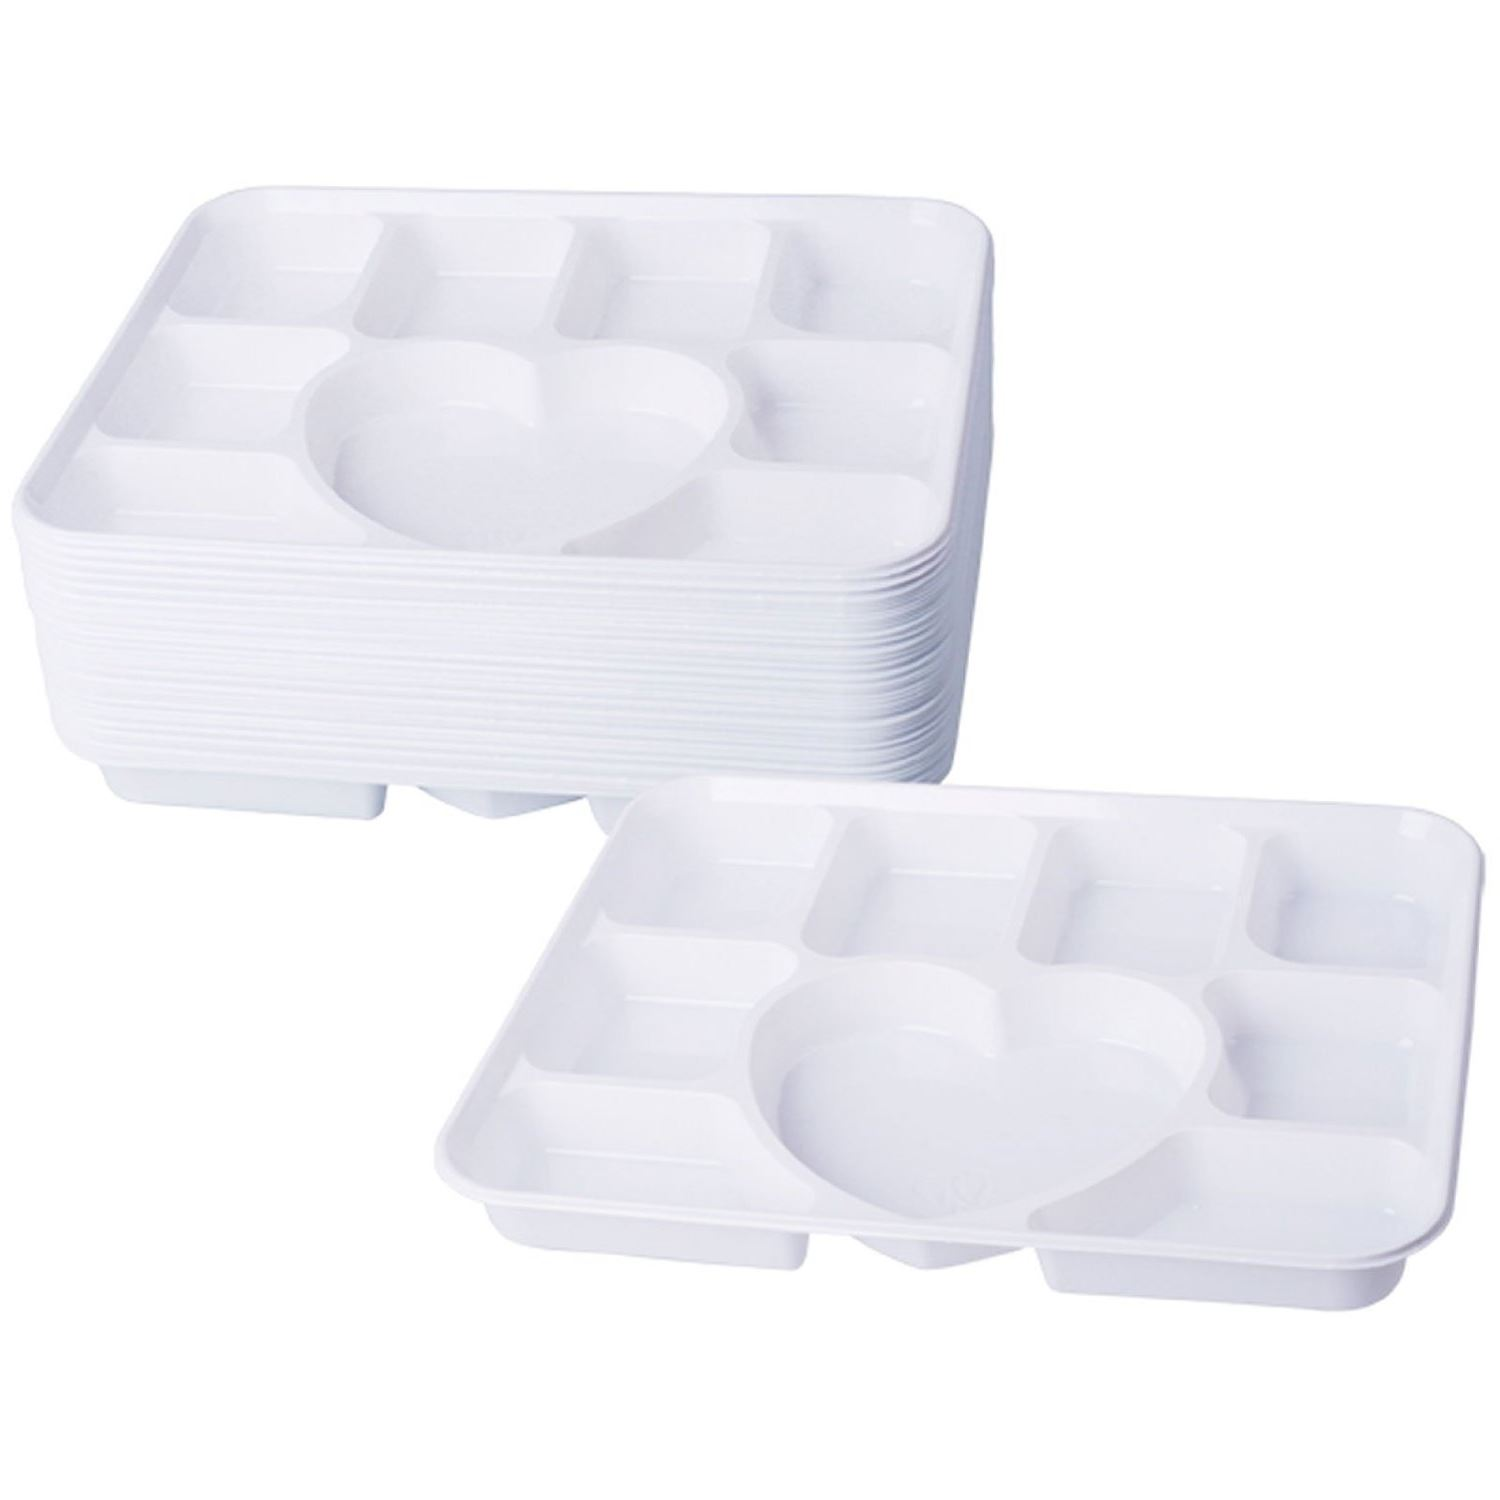 Compartment-Plastic-Dinner-Plates-50-pcs-Party-Home-  sc 1 st  eBay & Compartment Plastic Dinner Plates 50 pcs Party Home Food ...